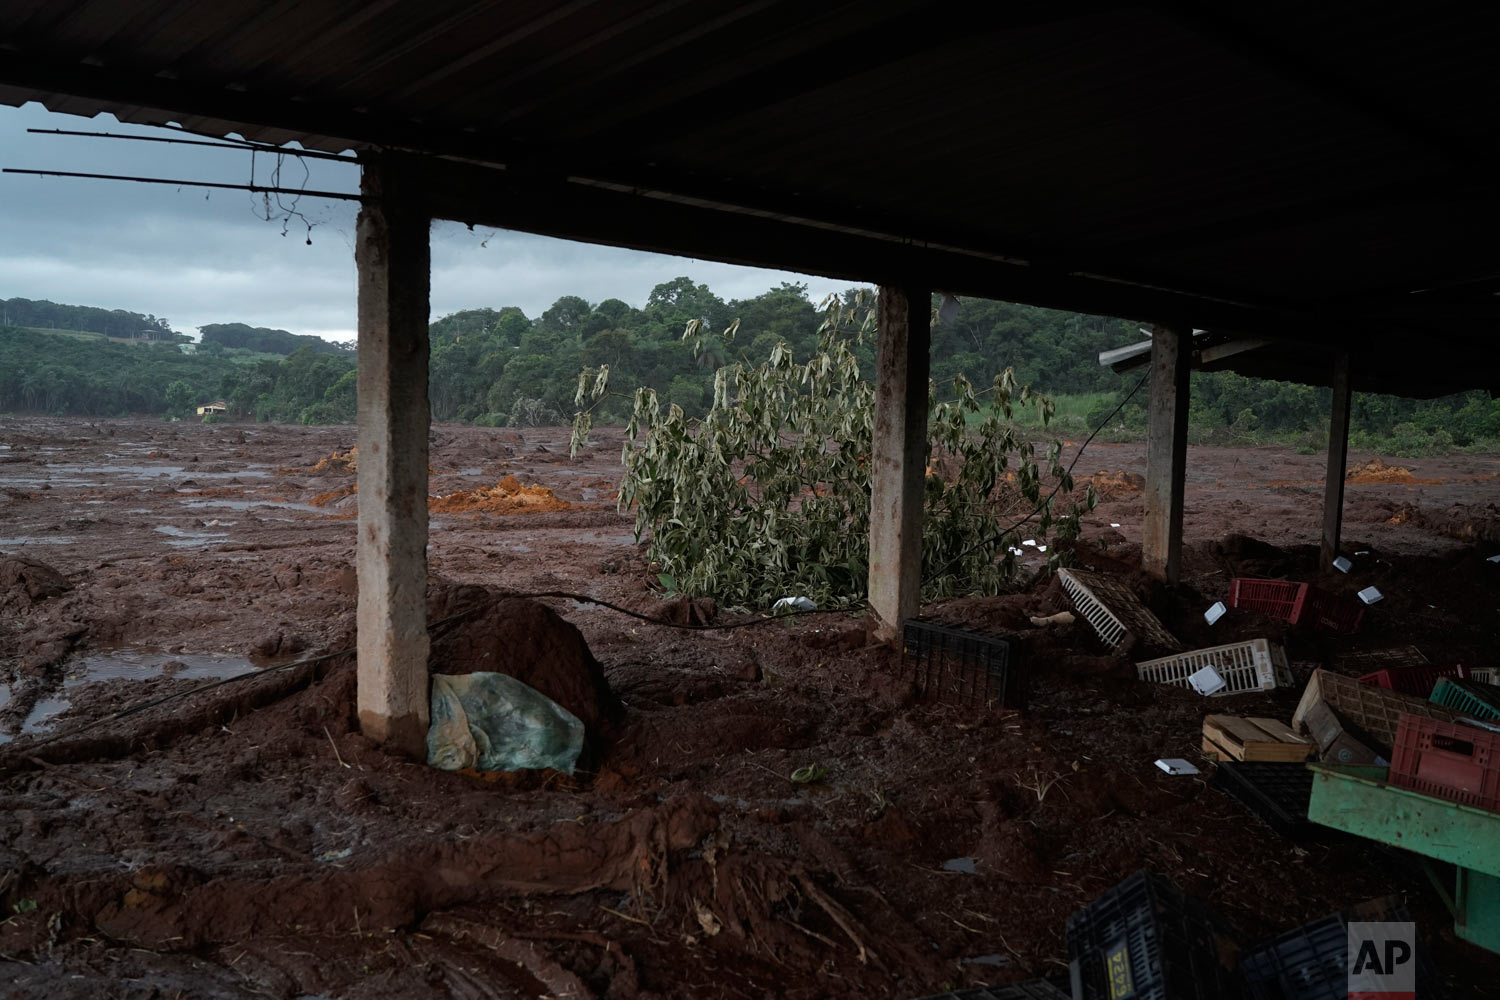 Mud covers a produce market after a Vale dam collapsed near Brumadinho, Brazil, Jan. 26, 2019. (AP Photo/Leo Correa)